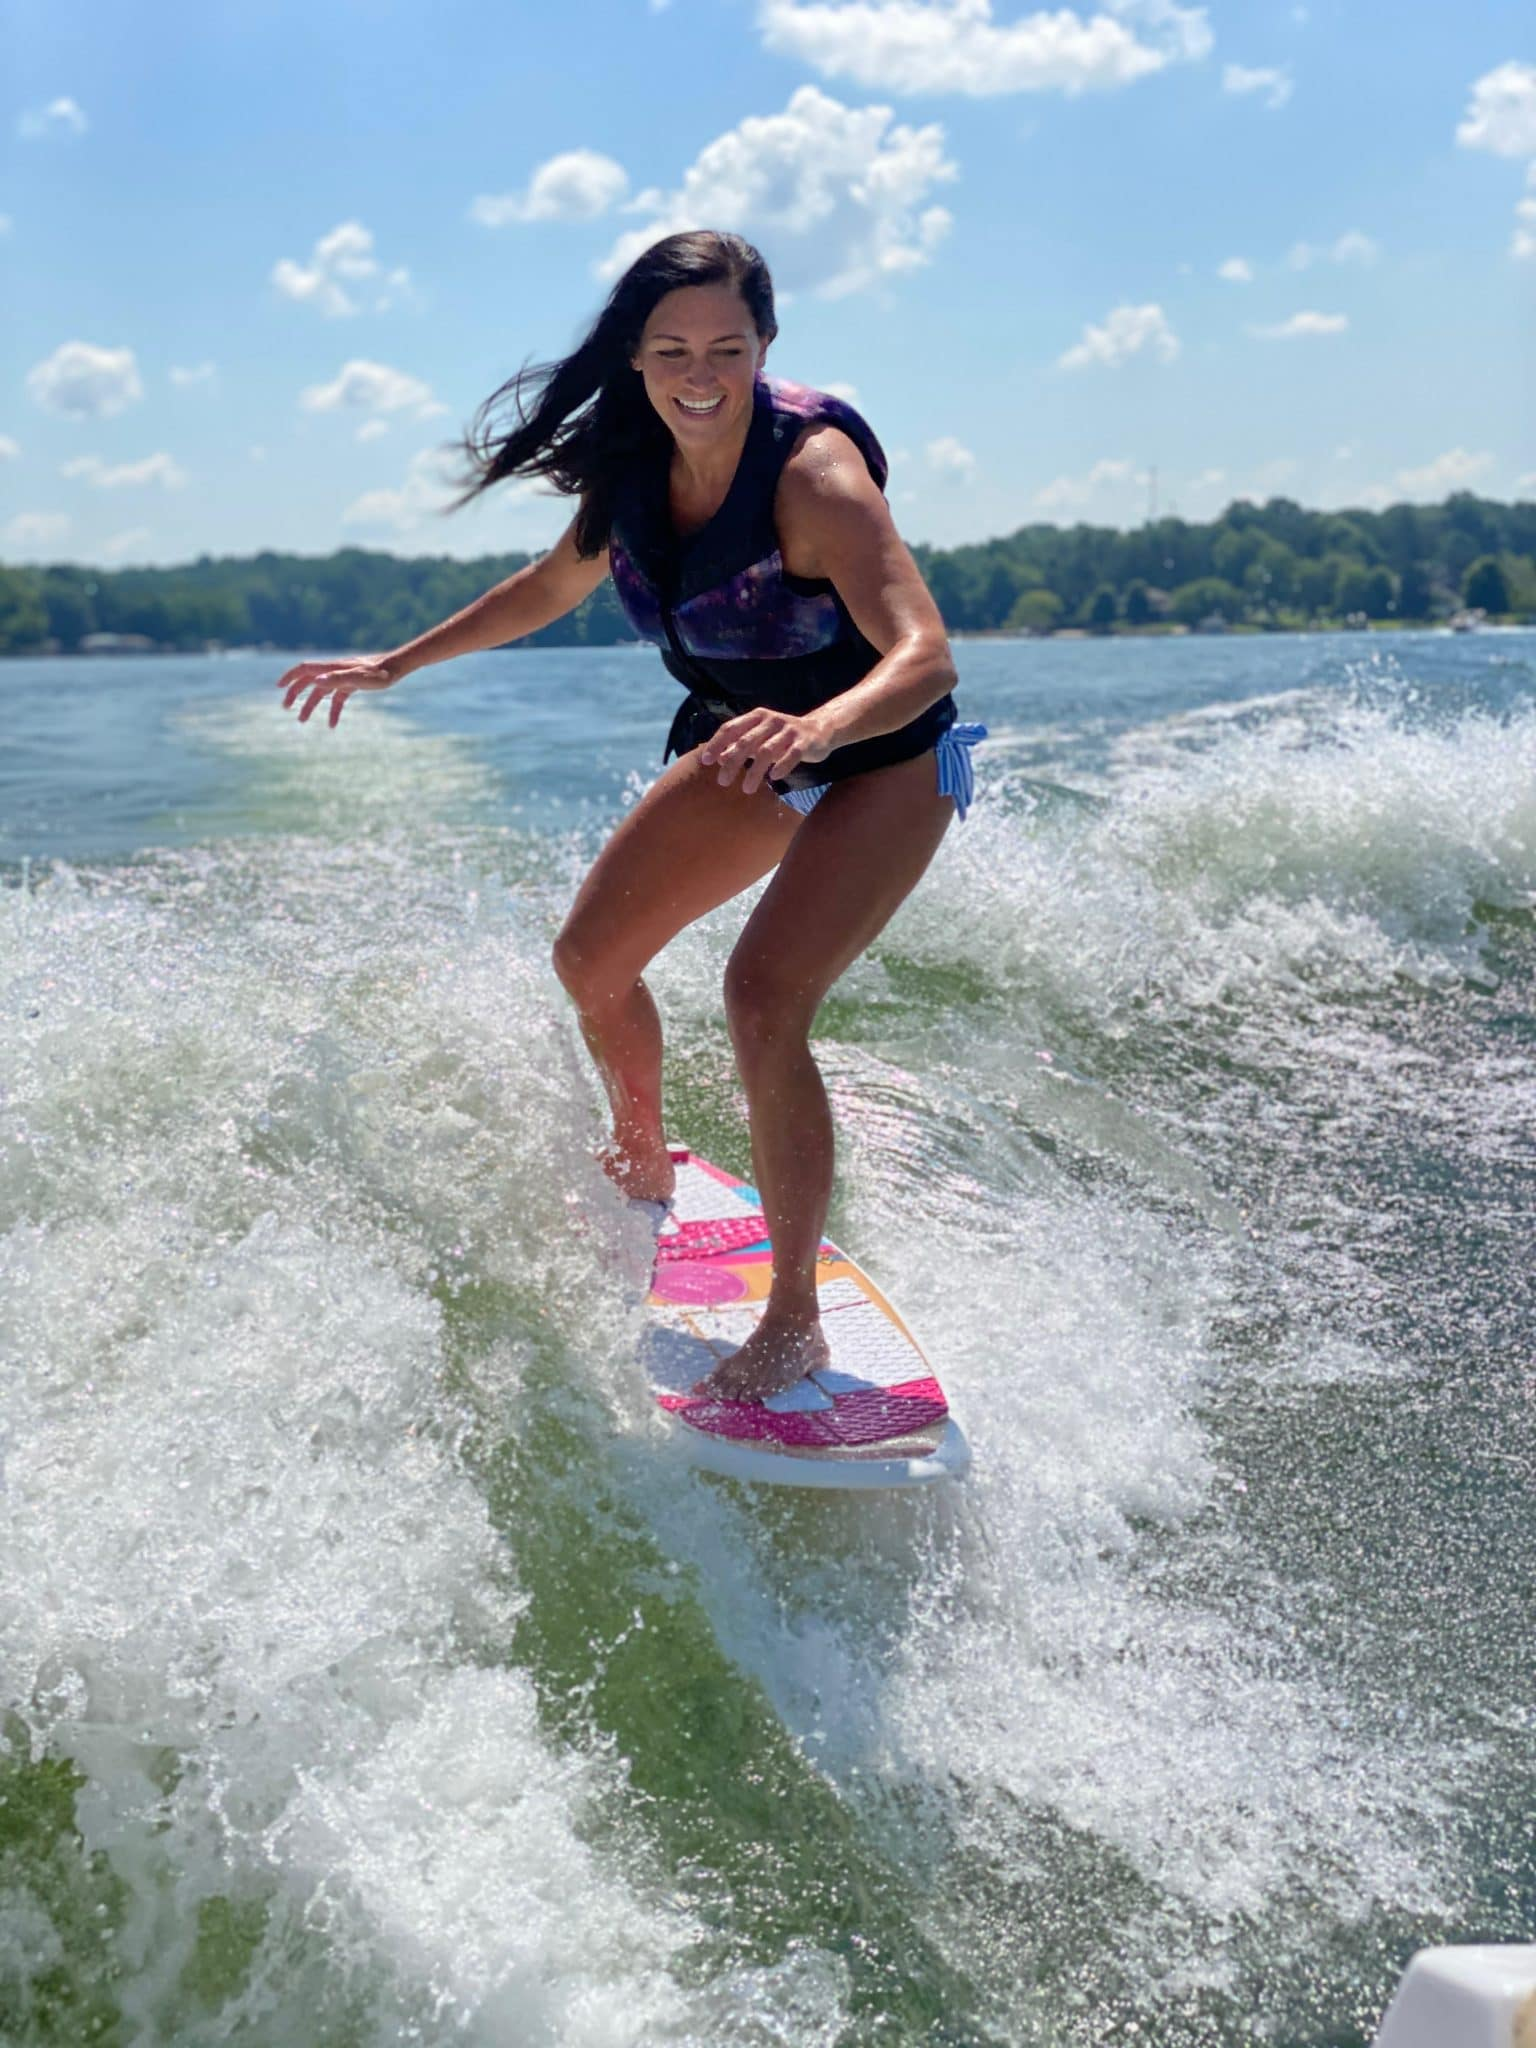 Molly Wey, Wakesurf Lake Norman, Stilettos and Diapers